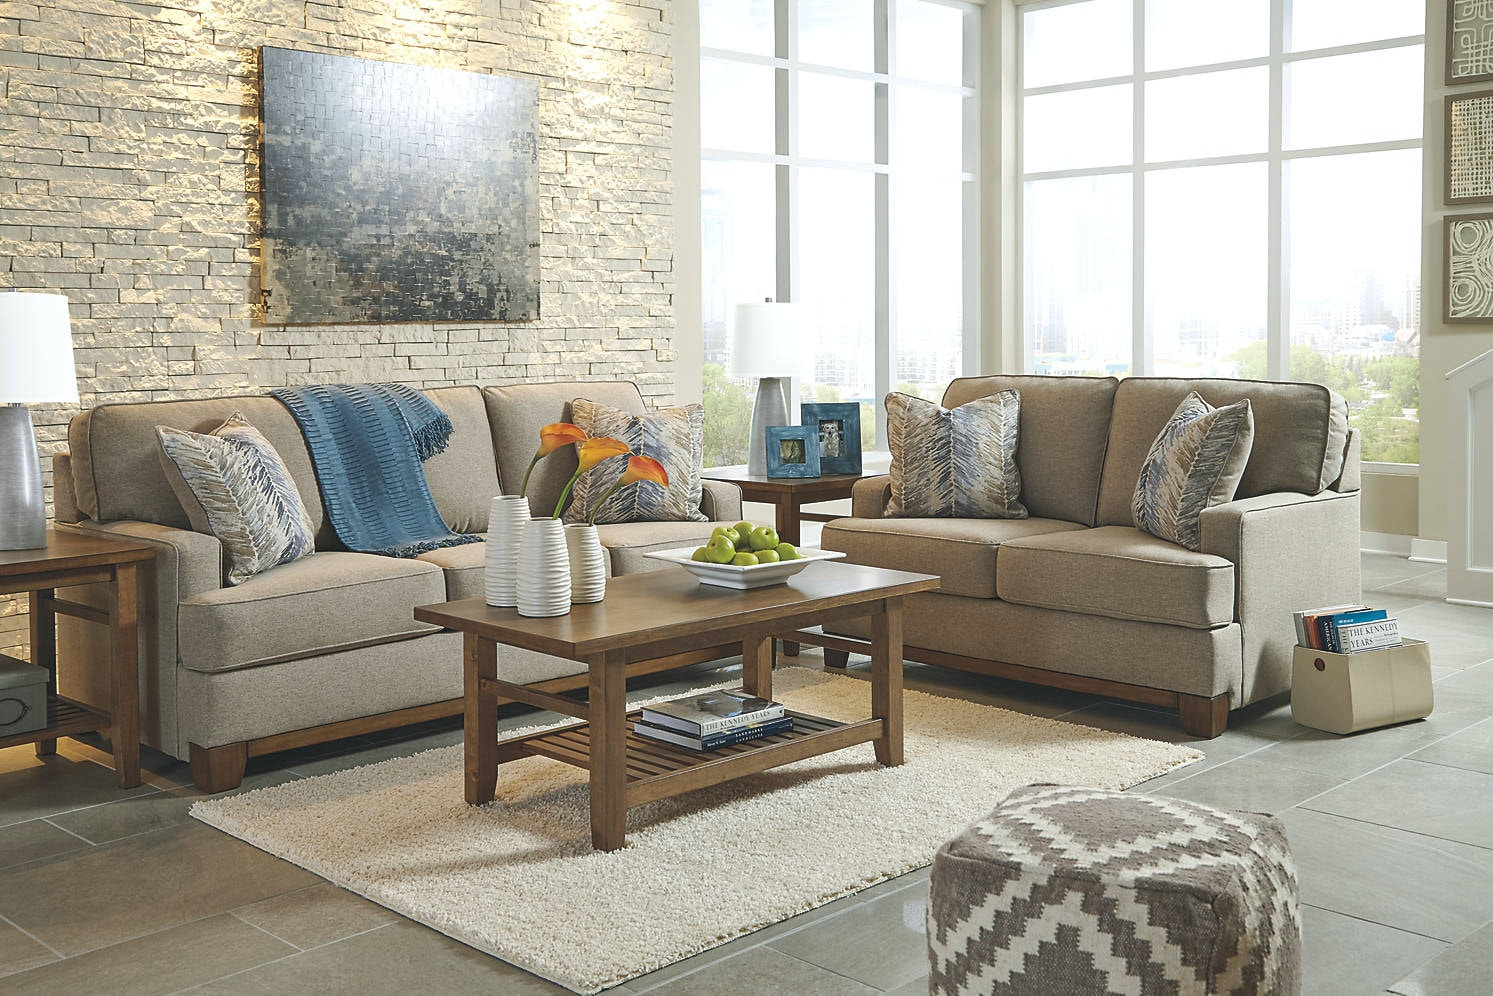 At your local Ashley Furniture HomeStore in Louisiana, you'll find so much to love in our wide selection of room-to-room furnishings. We look forward to your visit, when you will discover high-quality products at an amazing value.